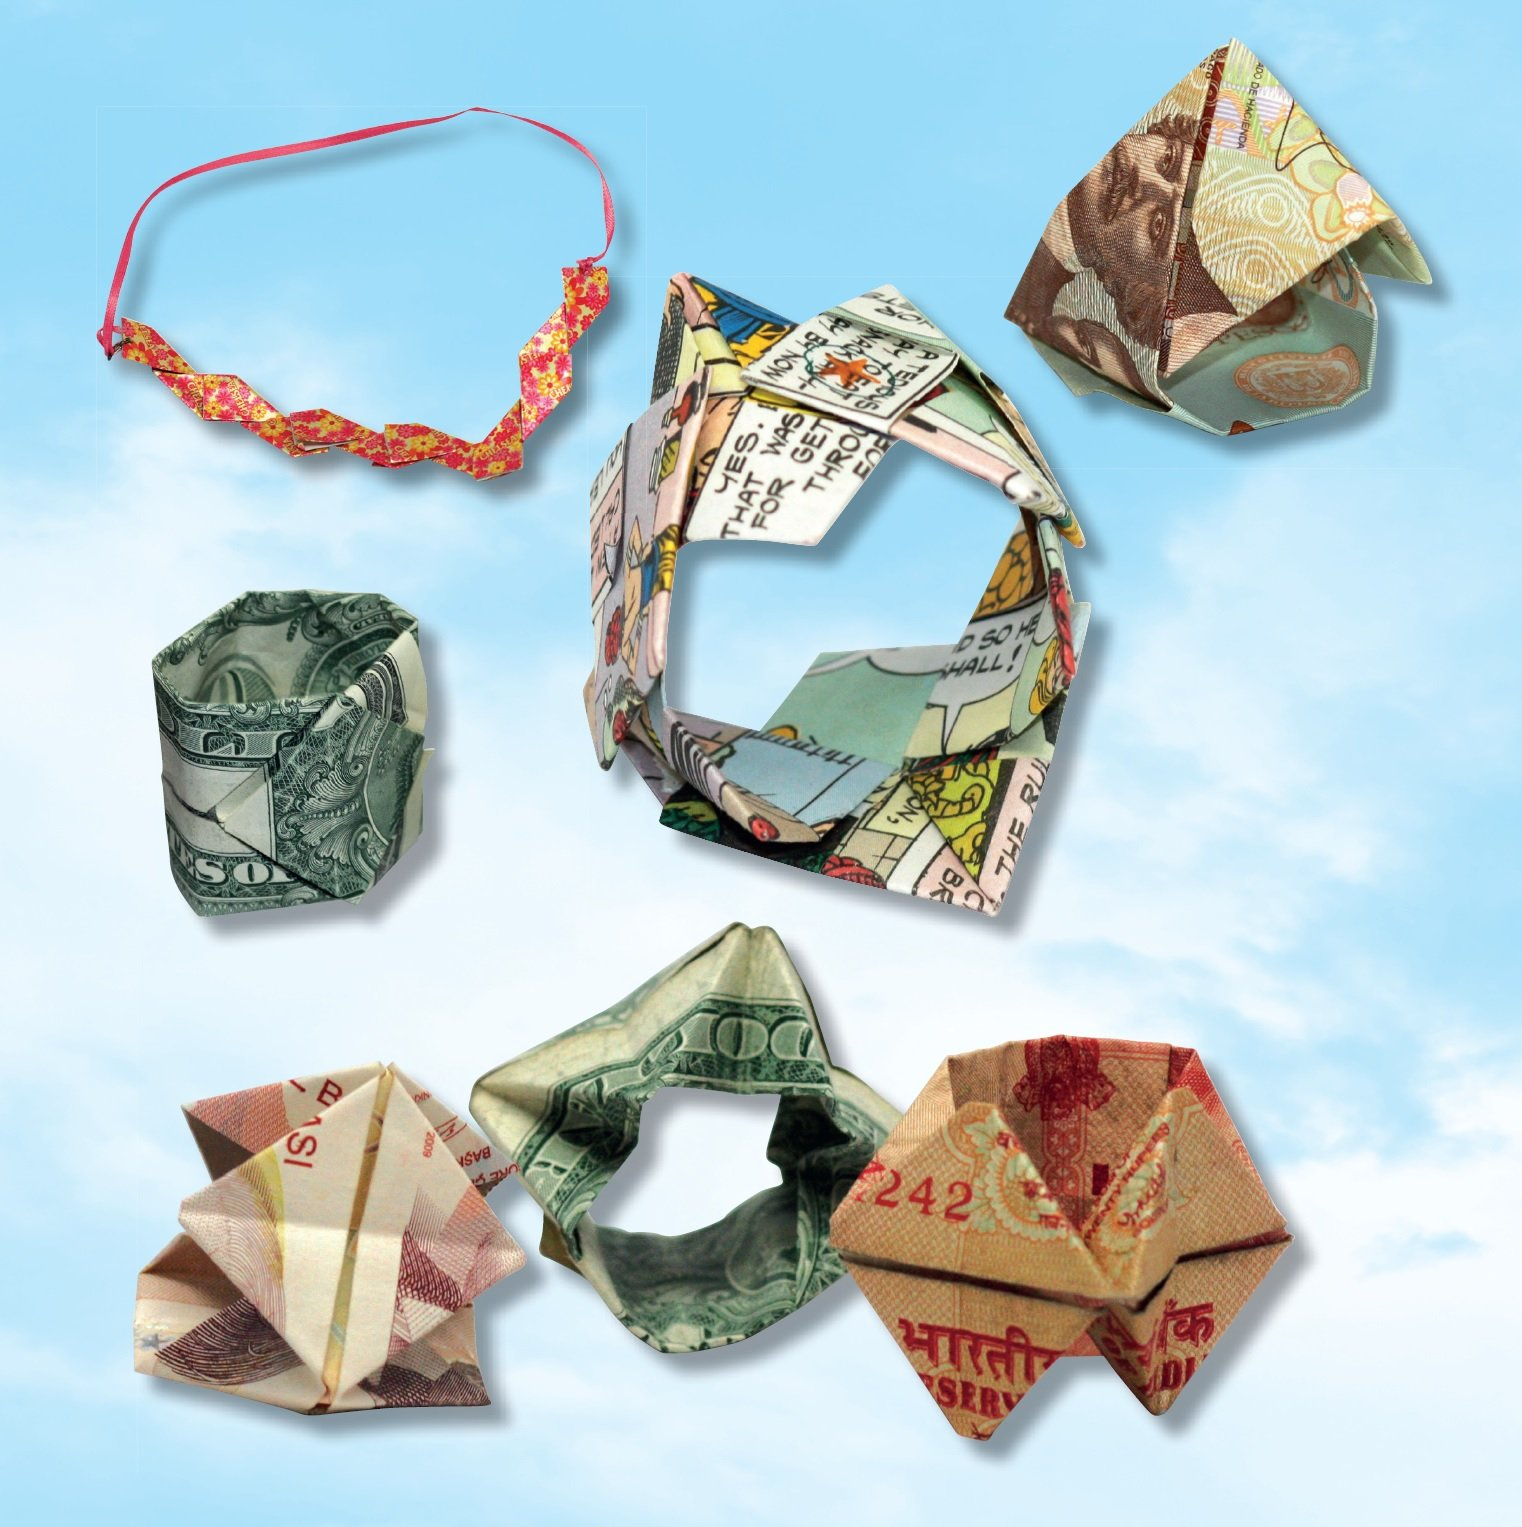 Travel Origami 24 Fun And Functional Keepsakes Central Lookup Model Diagrams Stepbystep Books With Easy Projects Make From Post Cards Maps More